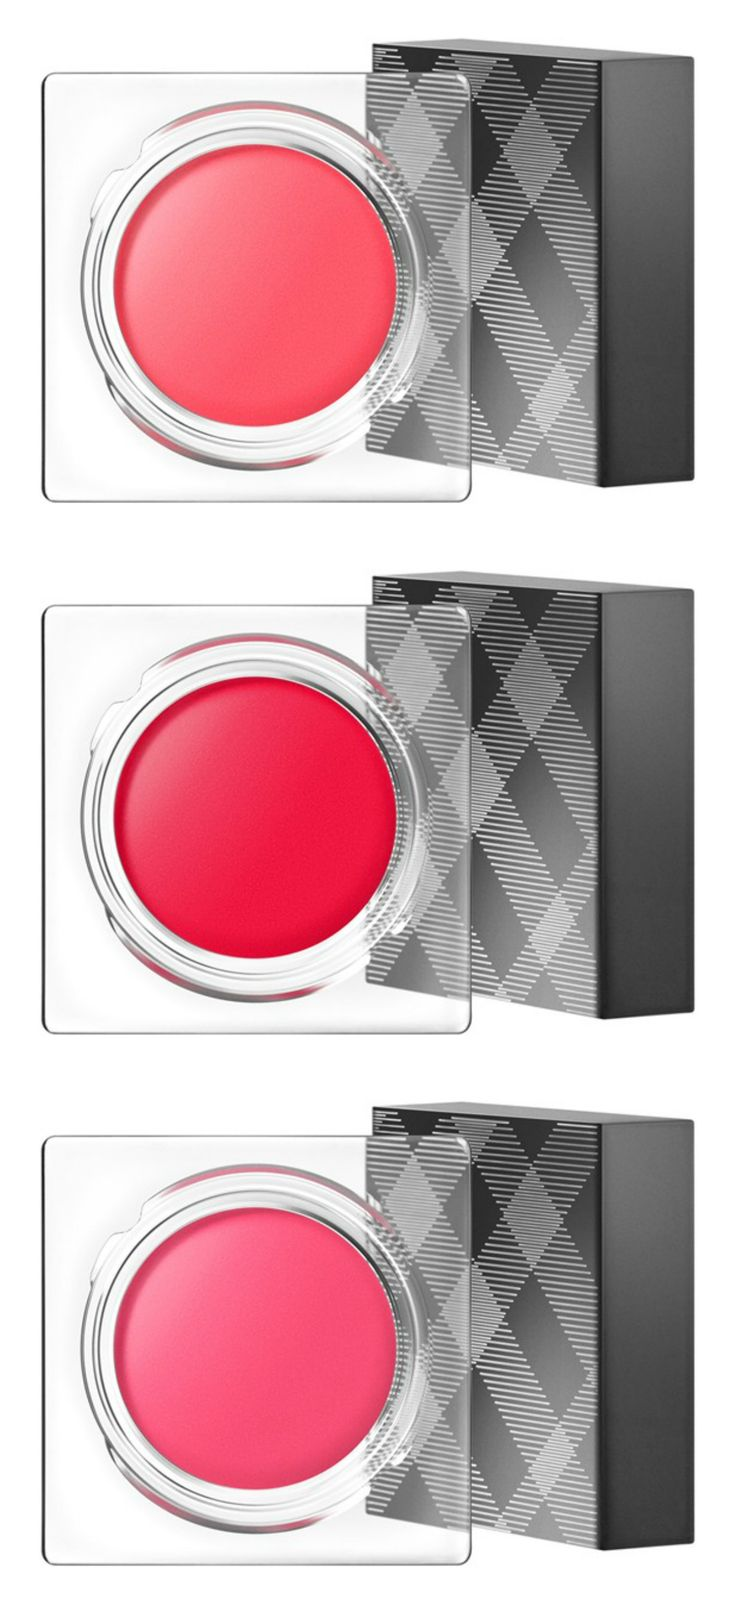 These shades are so perfect for spring | Burberry Beauty lip & cheek bloom.